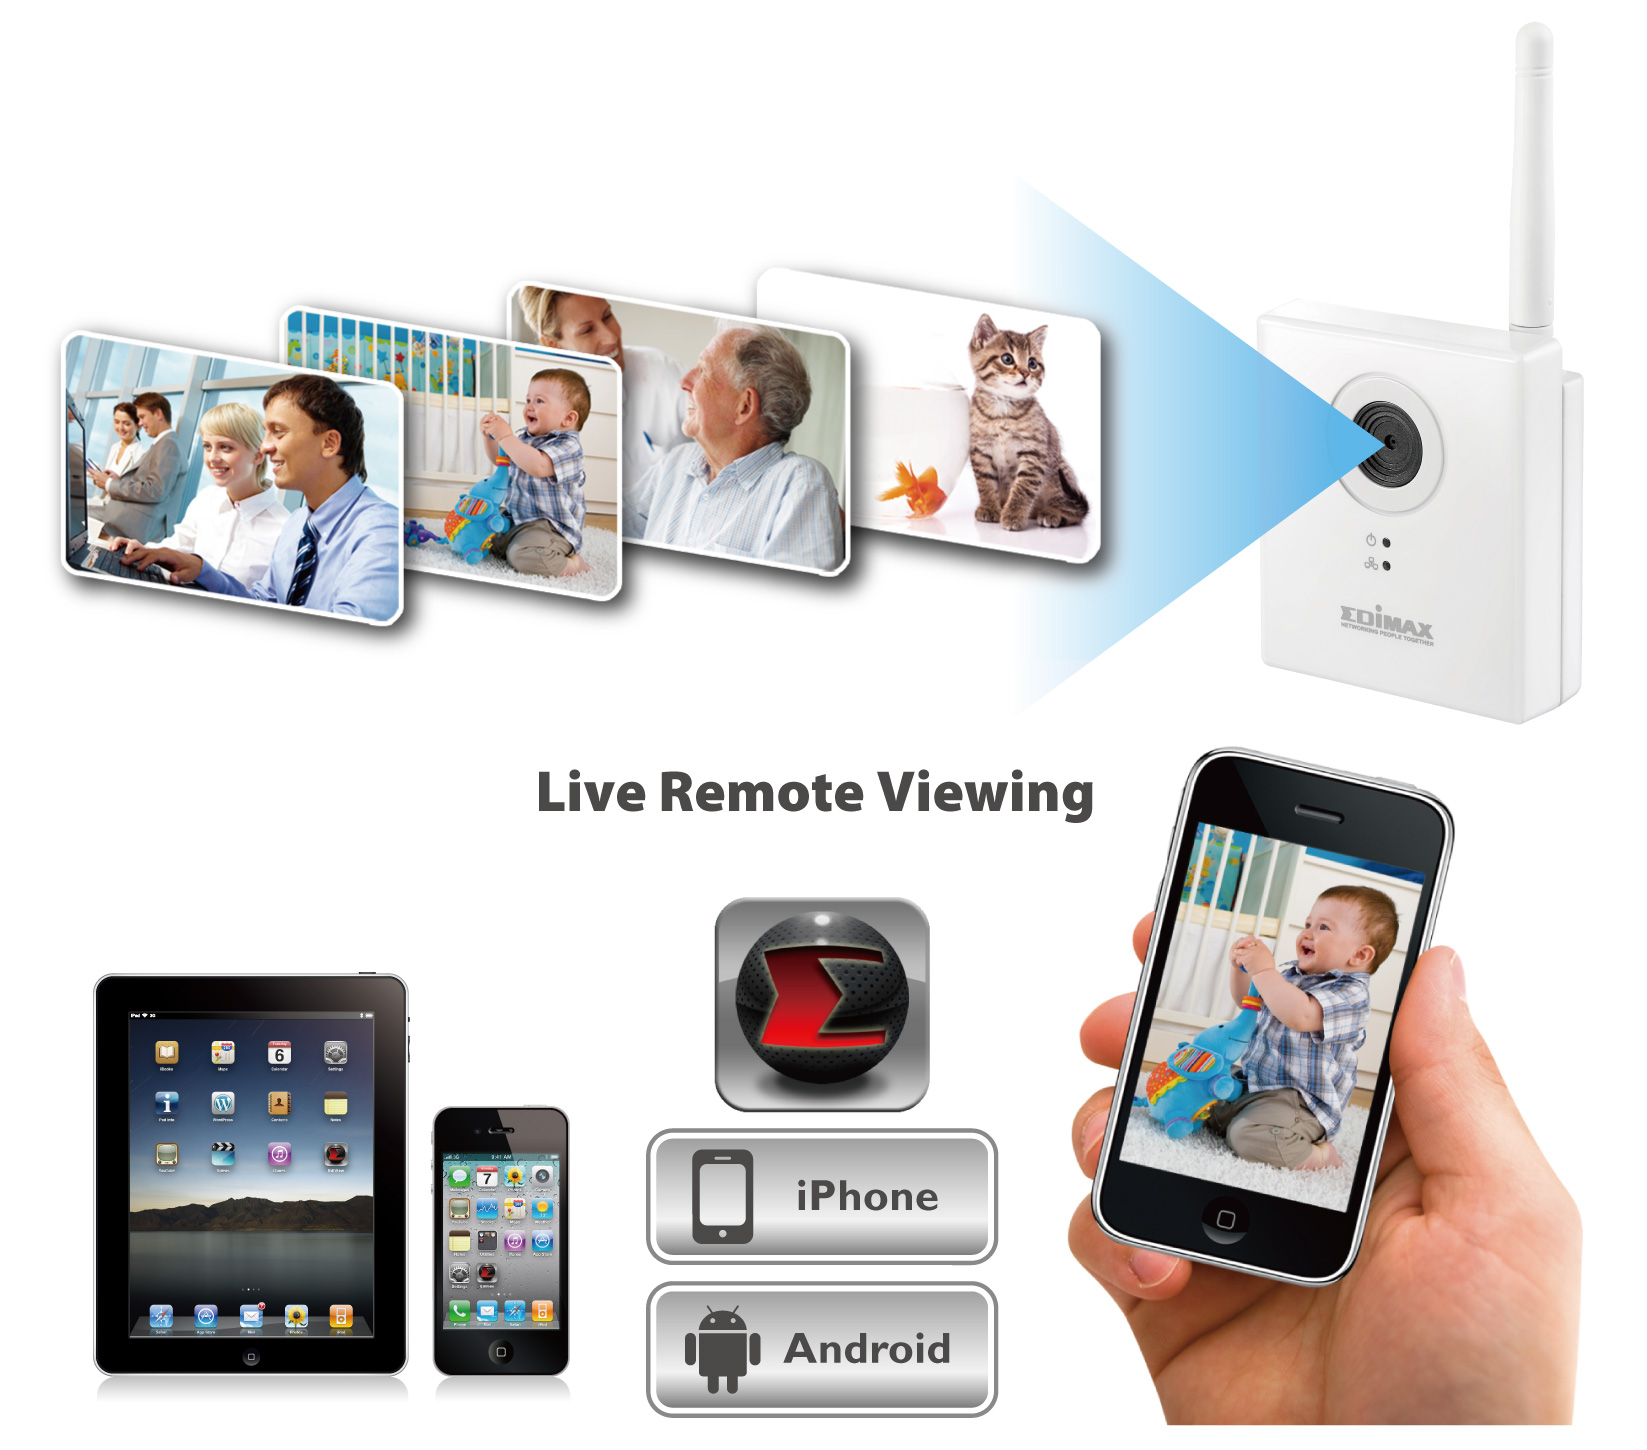 Edimax IC-3115W 1.3Mpx Wireless Network Camera, Live Remote Viewing Free App